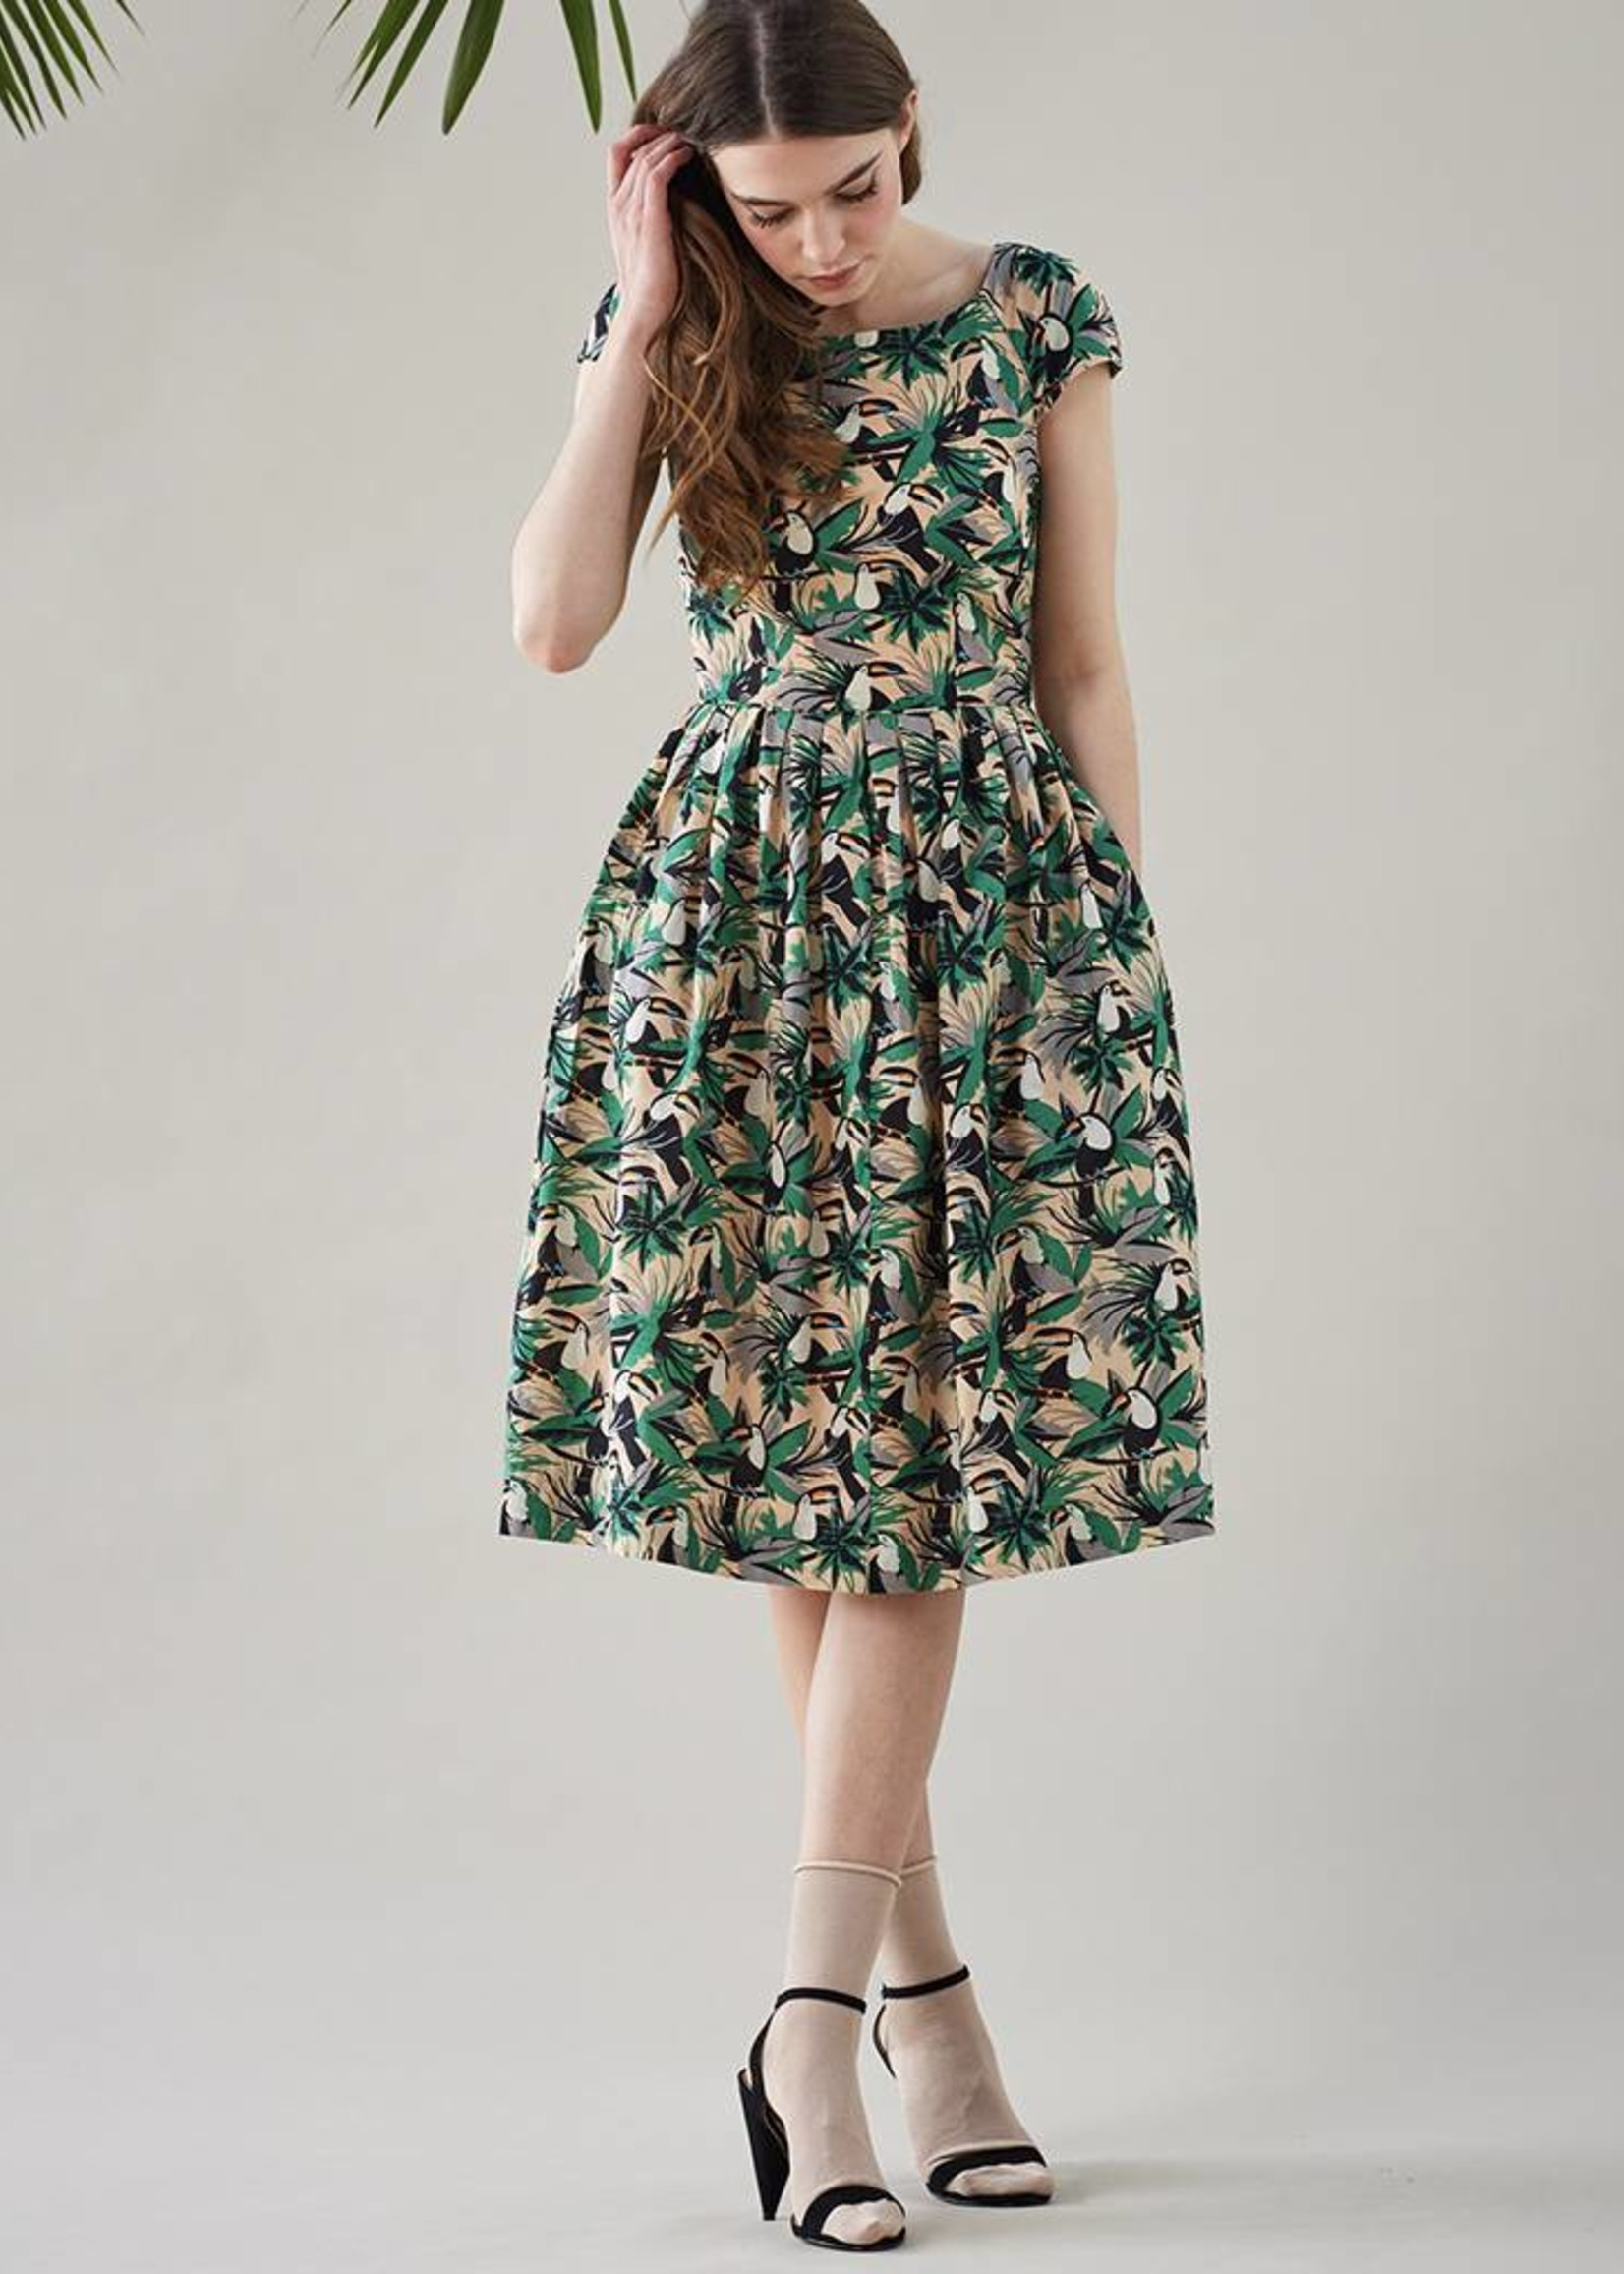 Emily & Fin Claudia Dress in Tropical Toucans